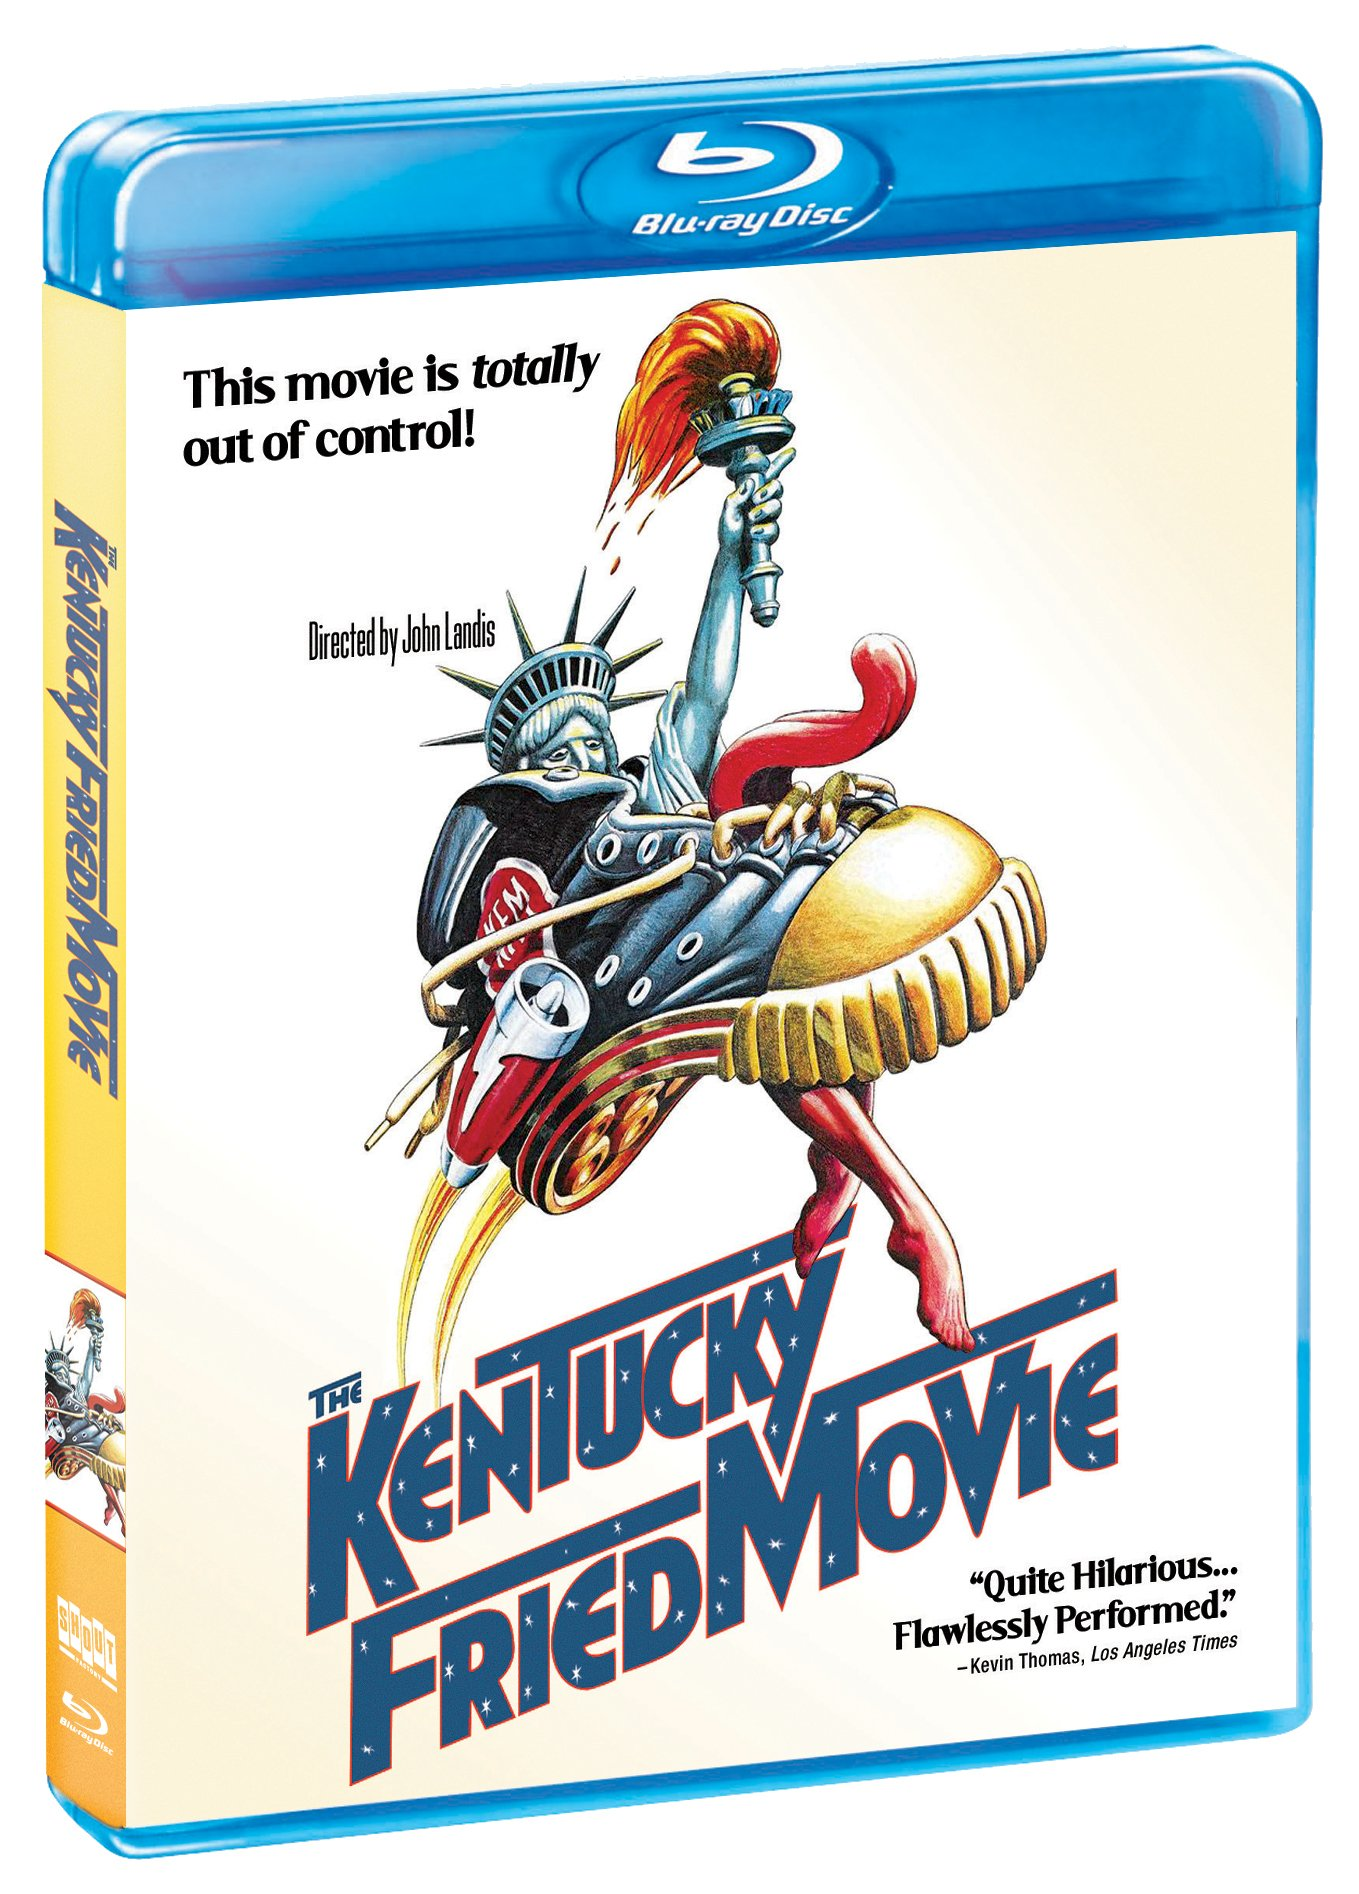 Blu-ray : The Kentucky Fried Movie (Special Edition, Widescreen)